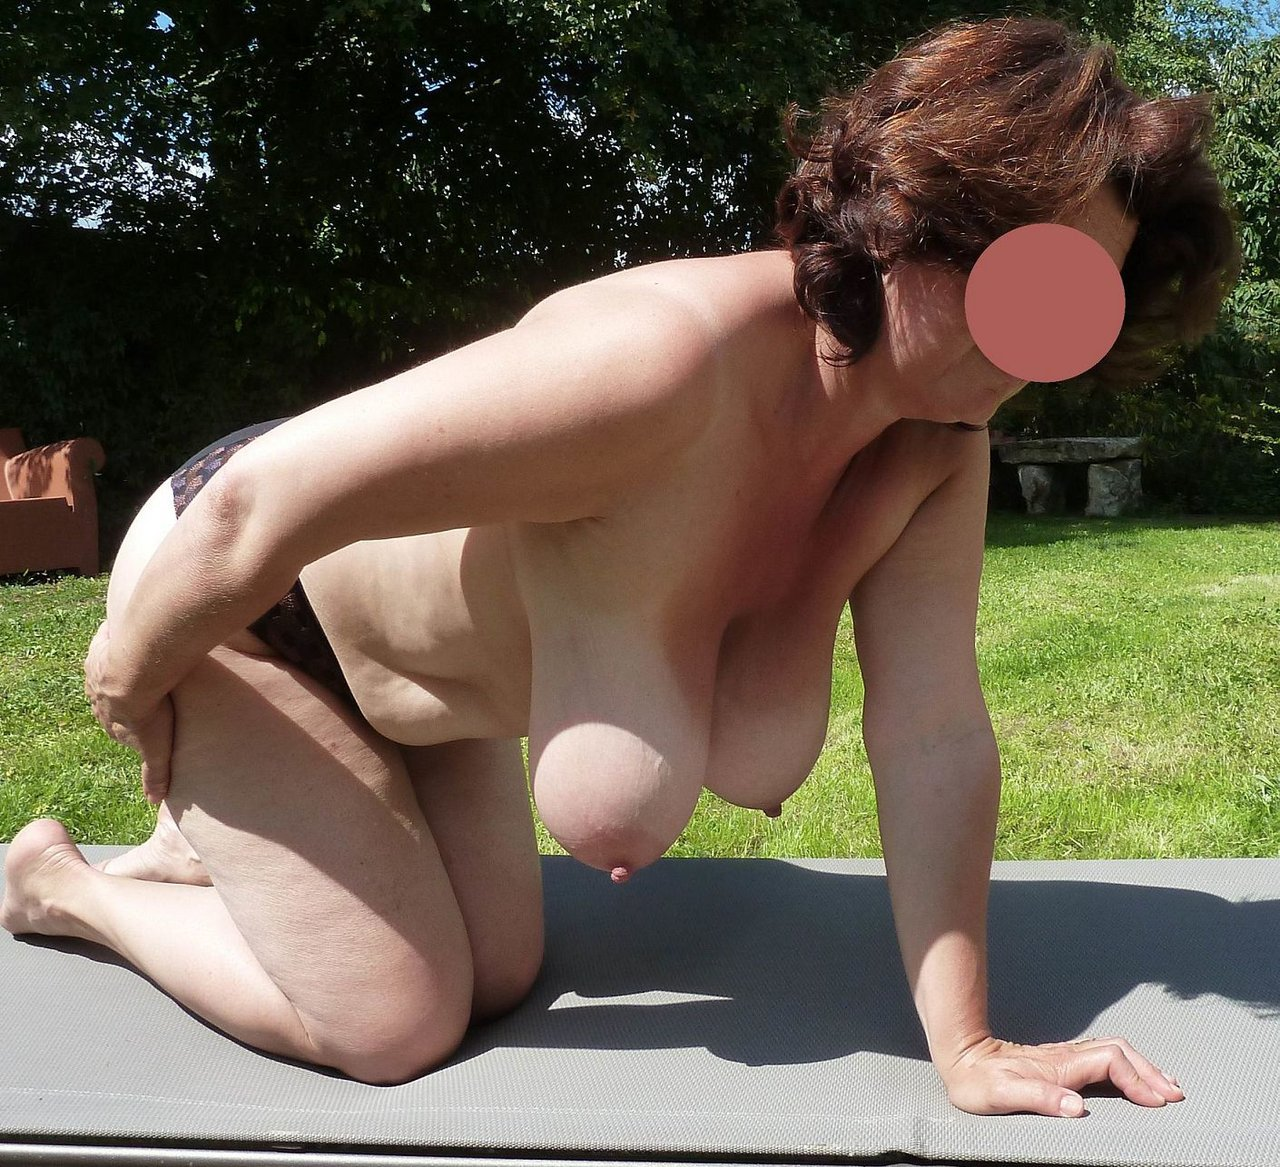 Saggy tits hairy pussy galery